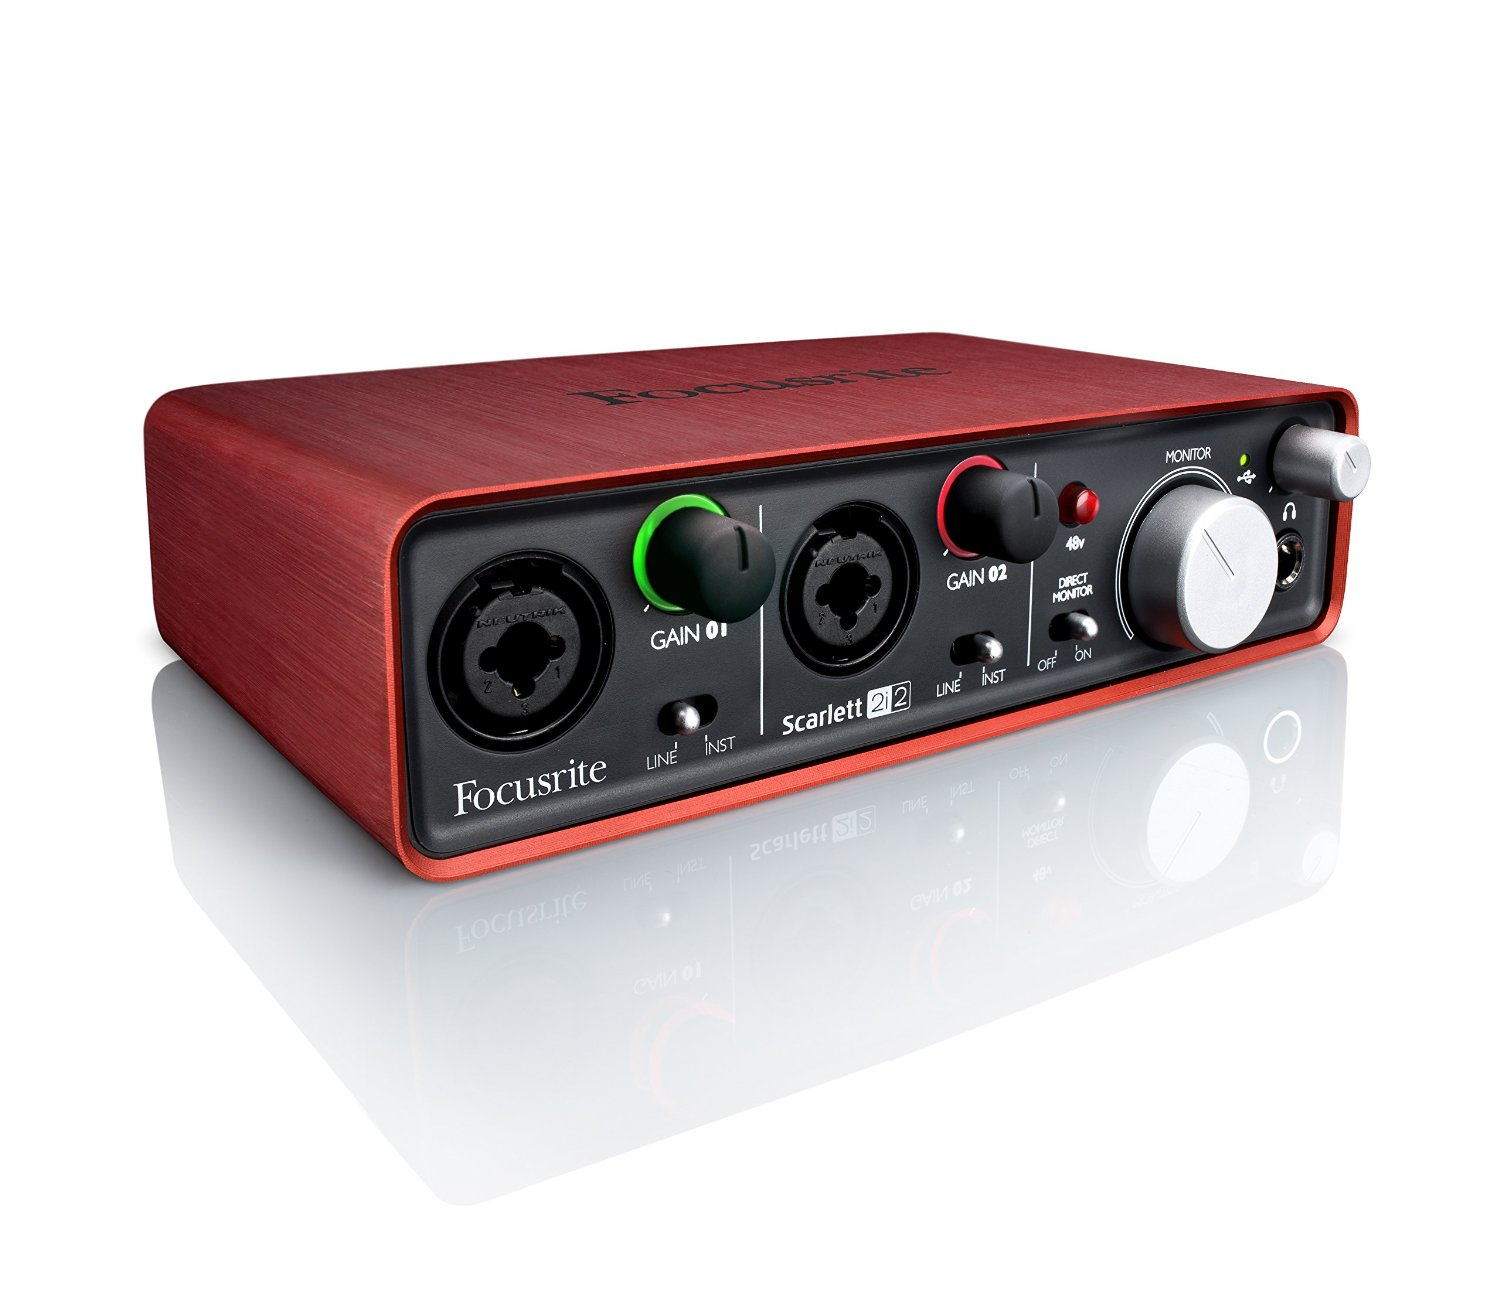 Focusrite Scarlett 2i2 USB Recording Audio Interface review